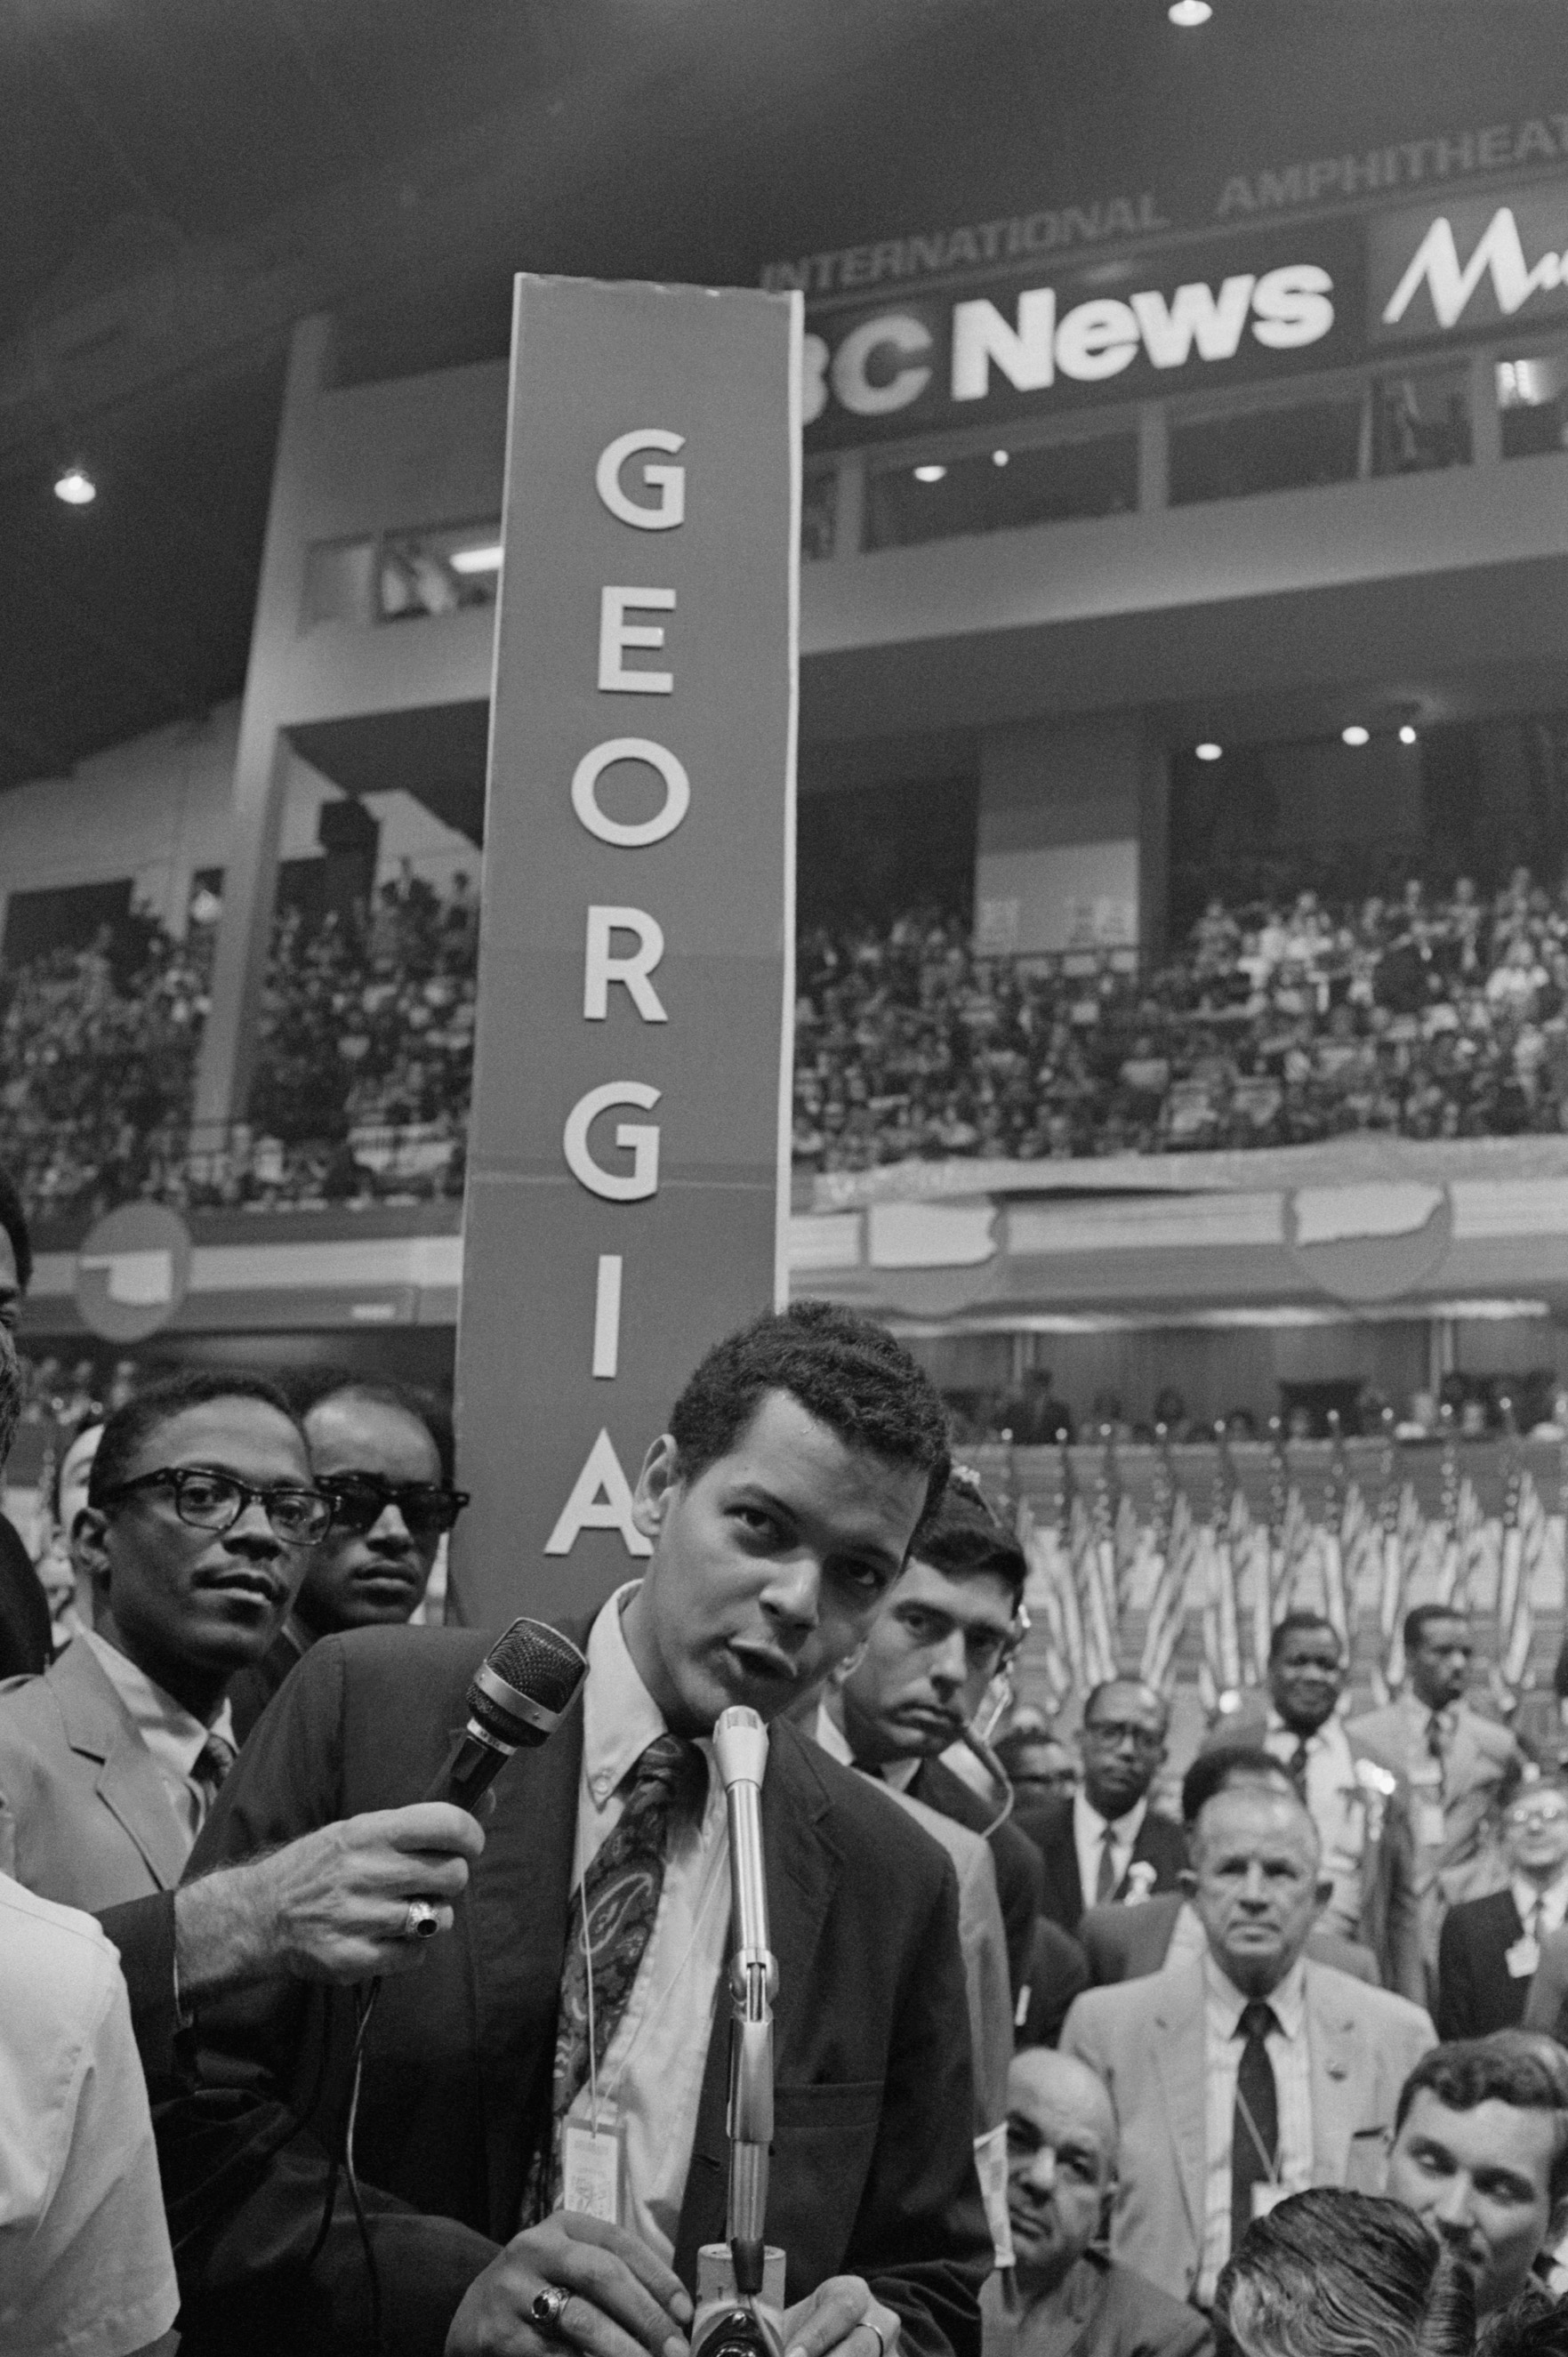 Georgia delegate Julian Bond at the microphone on the floor of the Convention Hall in Chicago on Aug. 29, 1968 after his name was placed in nomination for the Vice Presidential nomination. Bond declined the nomination because of his age.